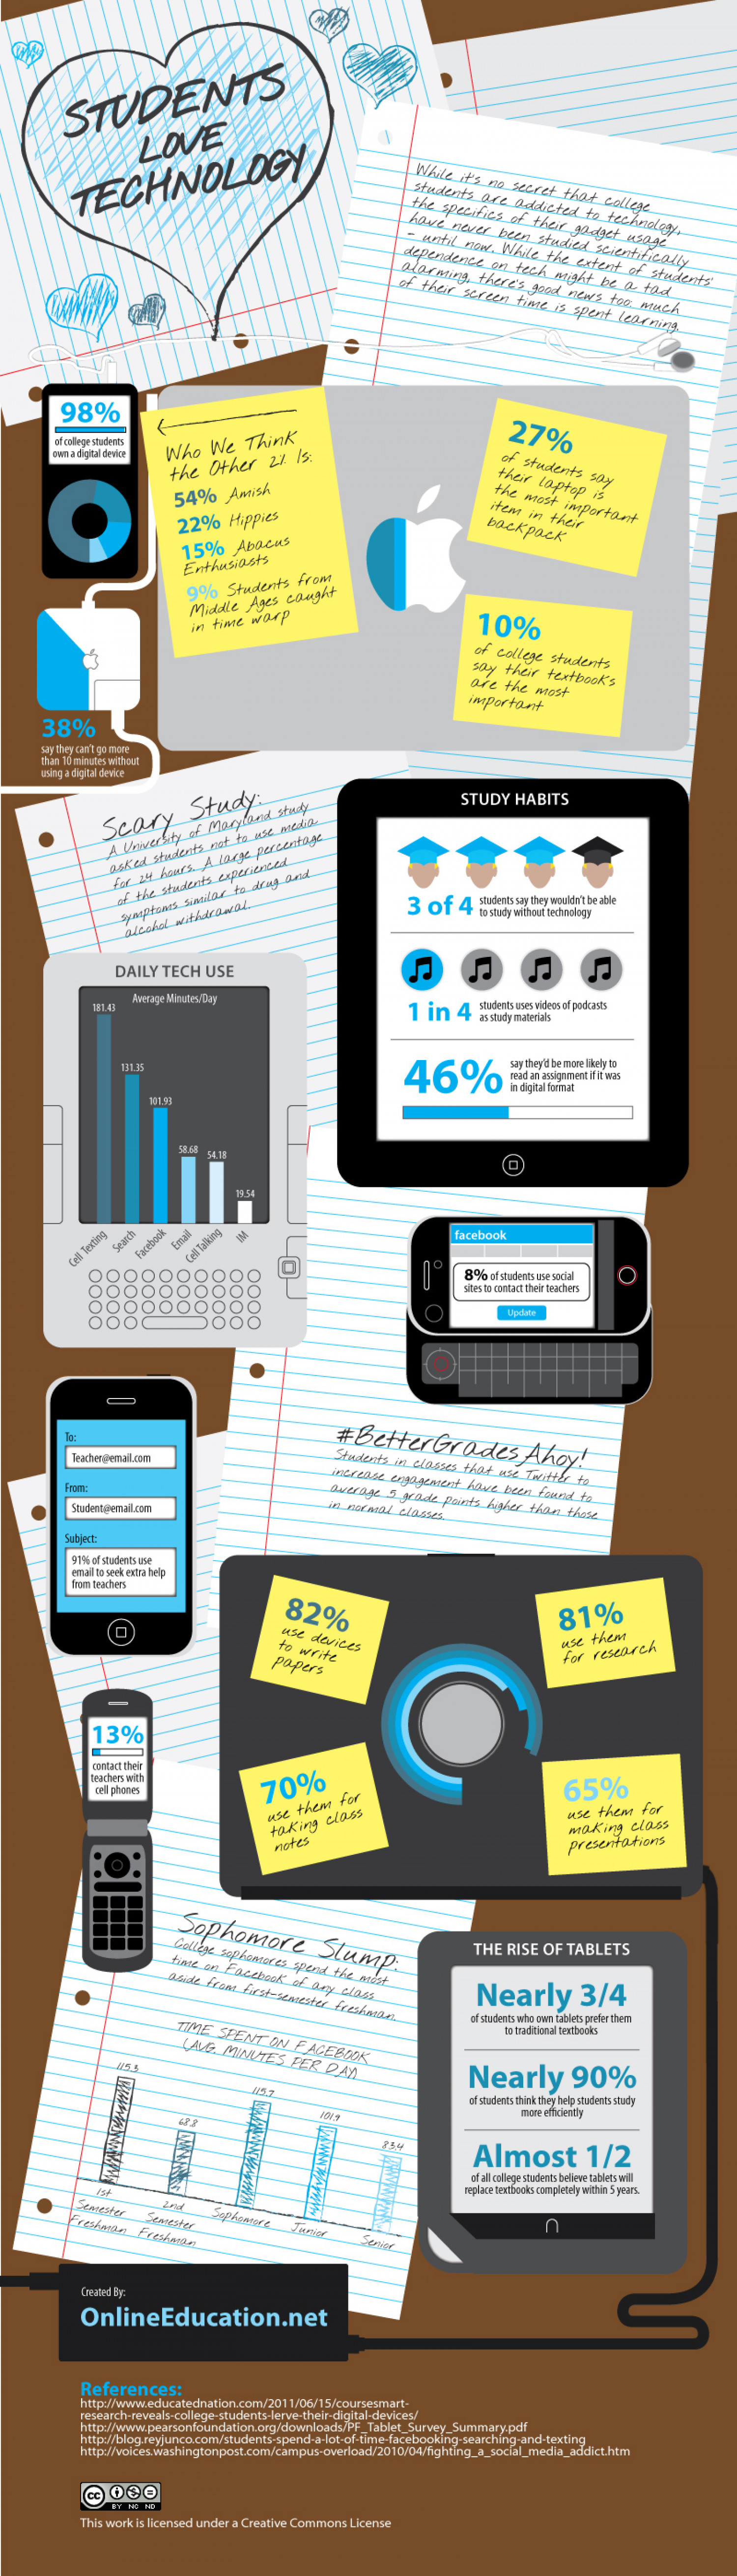 College Students are Addicted to Social Media Infographic